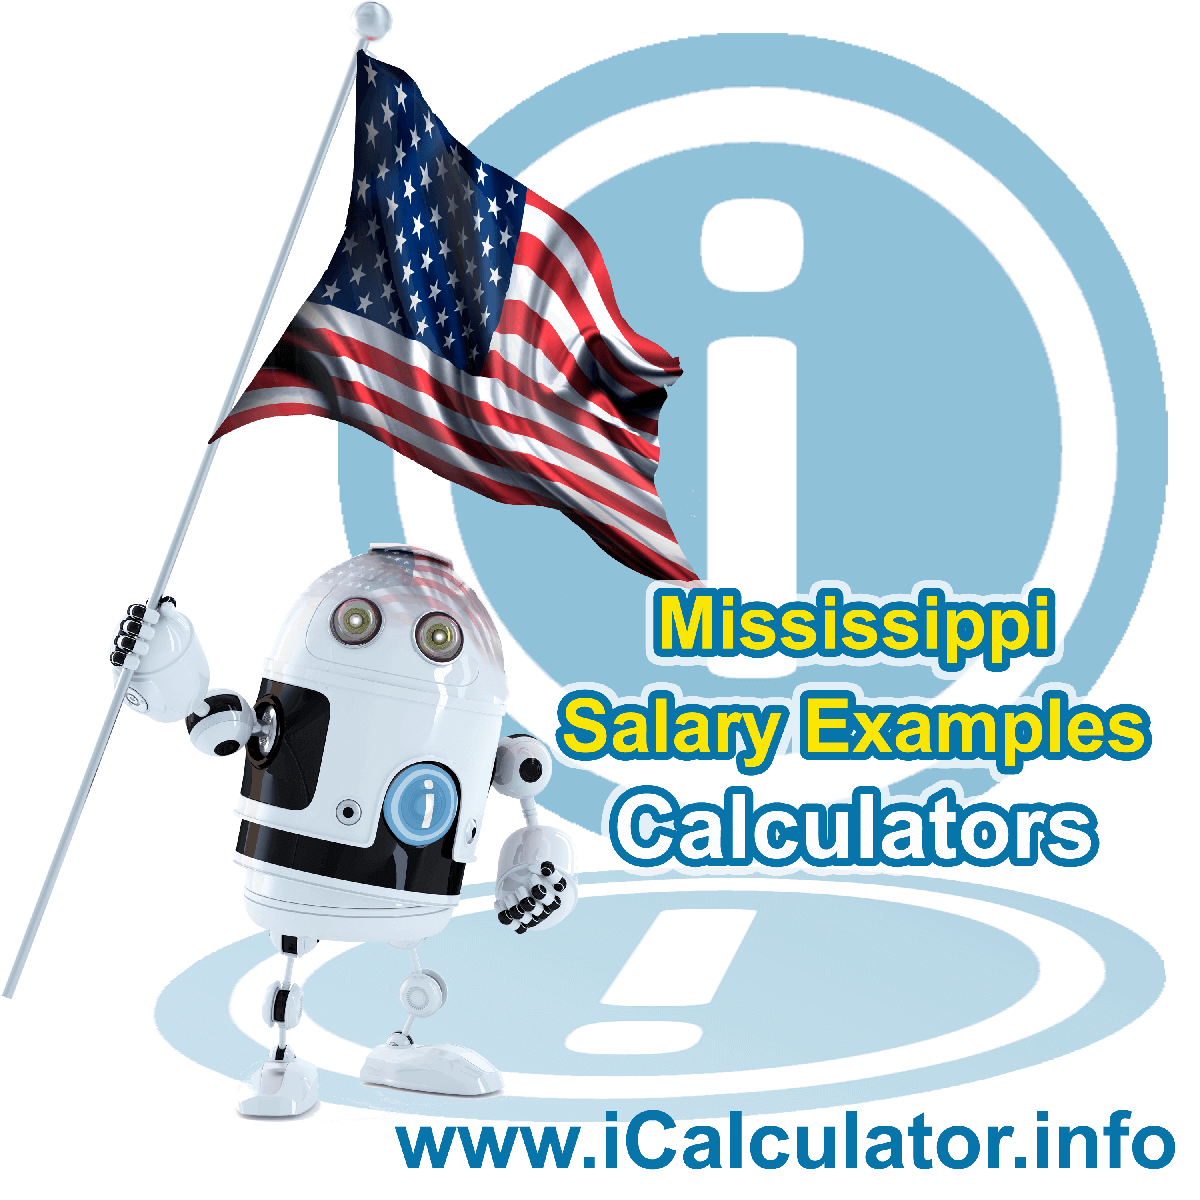 Mississippi Salary Example for $260.00 in 2020 | iCalculator | $260.00 salary example for employee and employer paying Mississippi State tincome taxes. Detailed salary after tax calculation including Mississippi State Tax, Federal State Tax, Medicare Deductions, Social Security, Capital Gains and other income tax and salary deductions complete with supporting Mississippi state tax tables